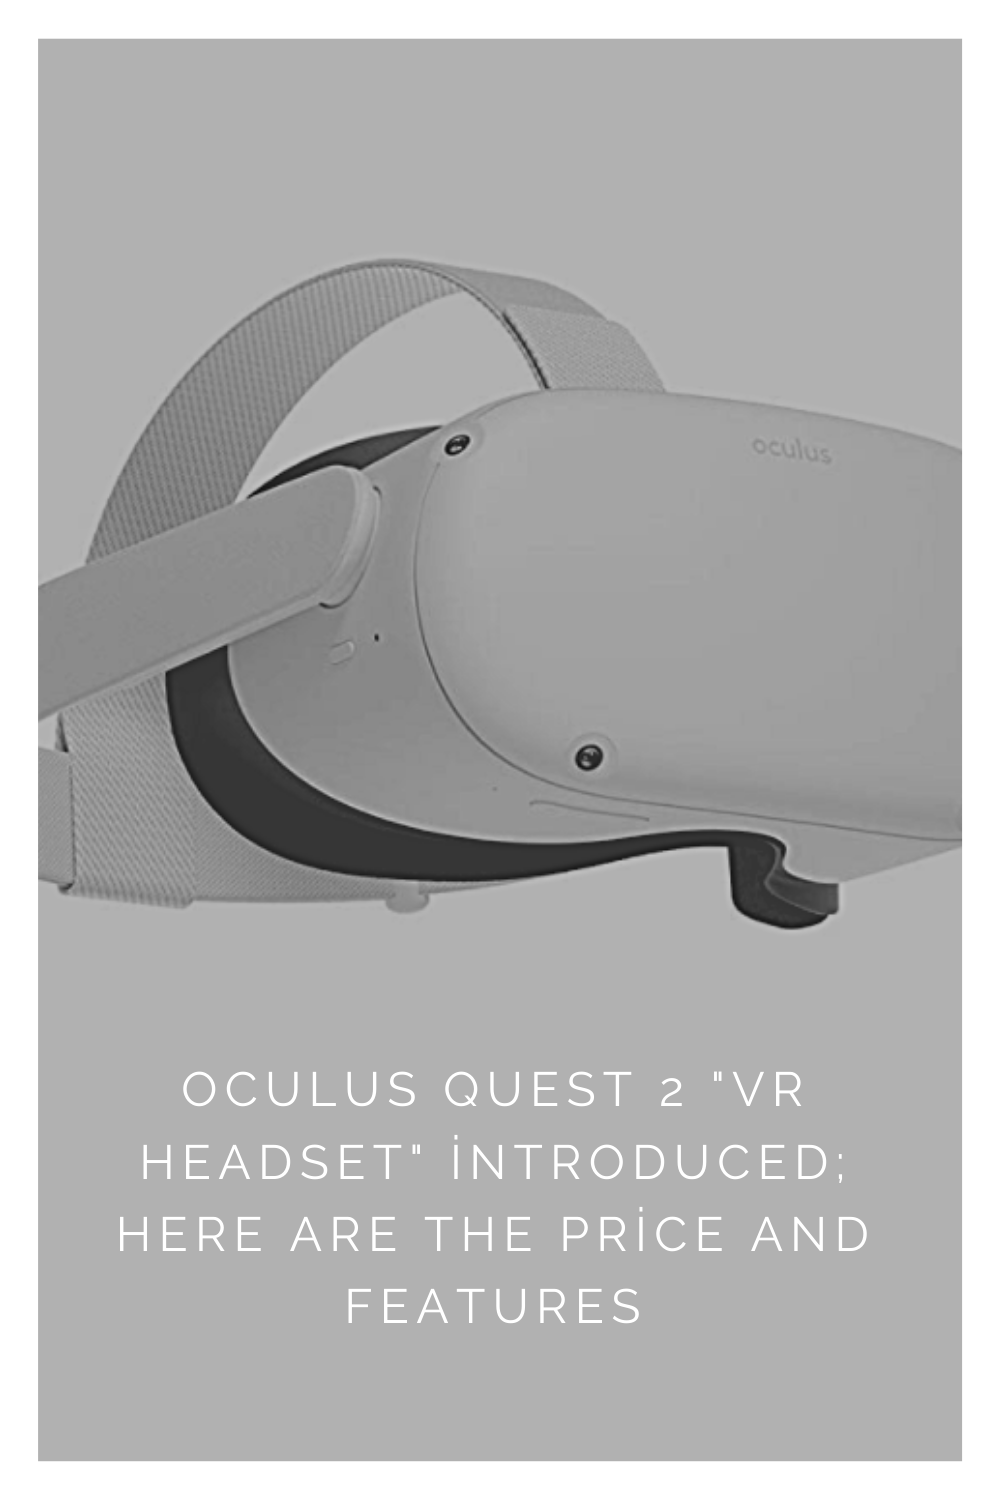 Oculus Quest 2 Vr Headset Introduced Here Are The Price And Features In 2020 Vr Headset Oculus Headset